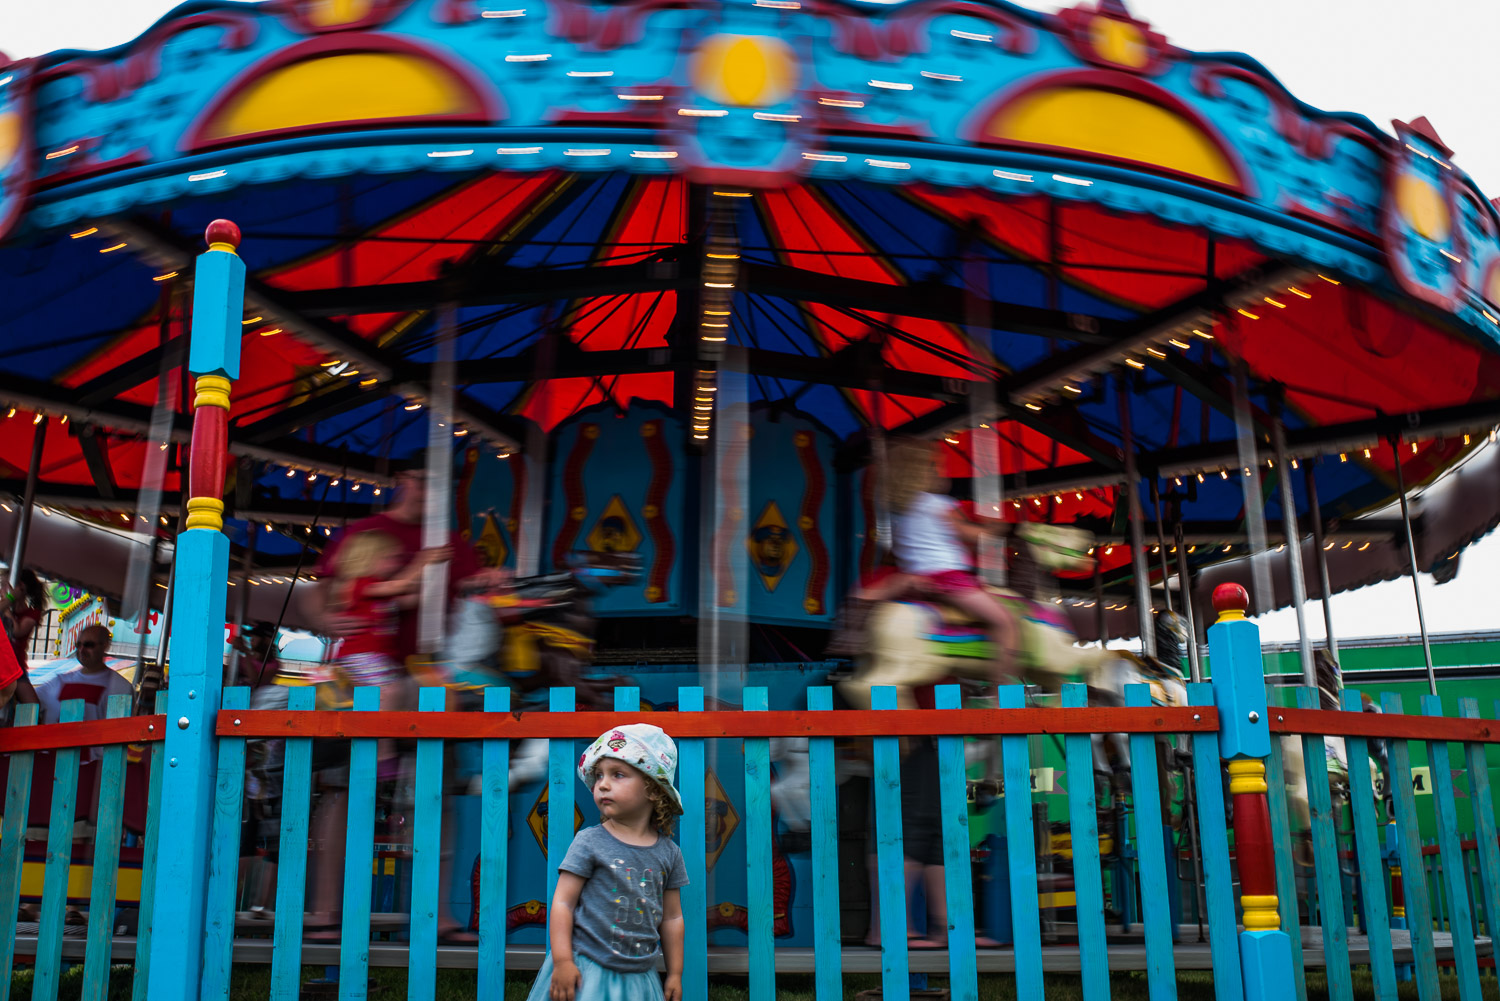 Toddler girl in grey t-shirt and blue tule skirt in front of colourful carousel which is spinning